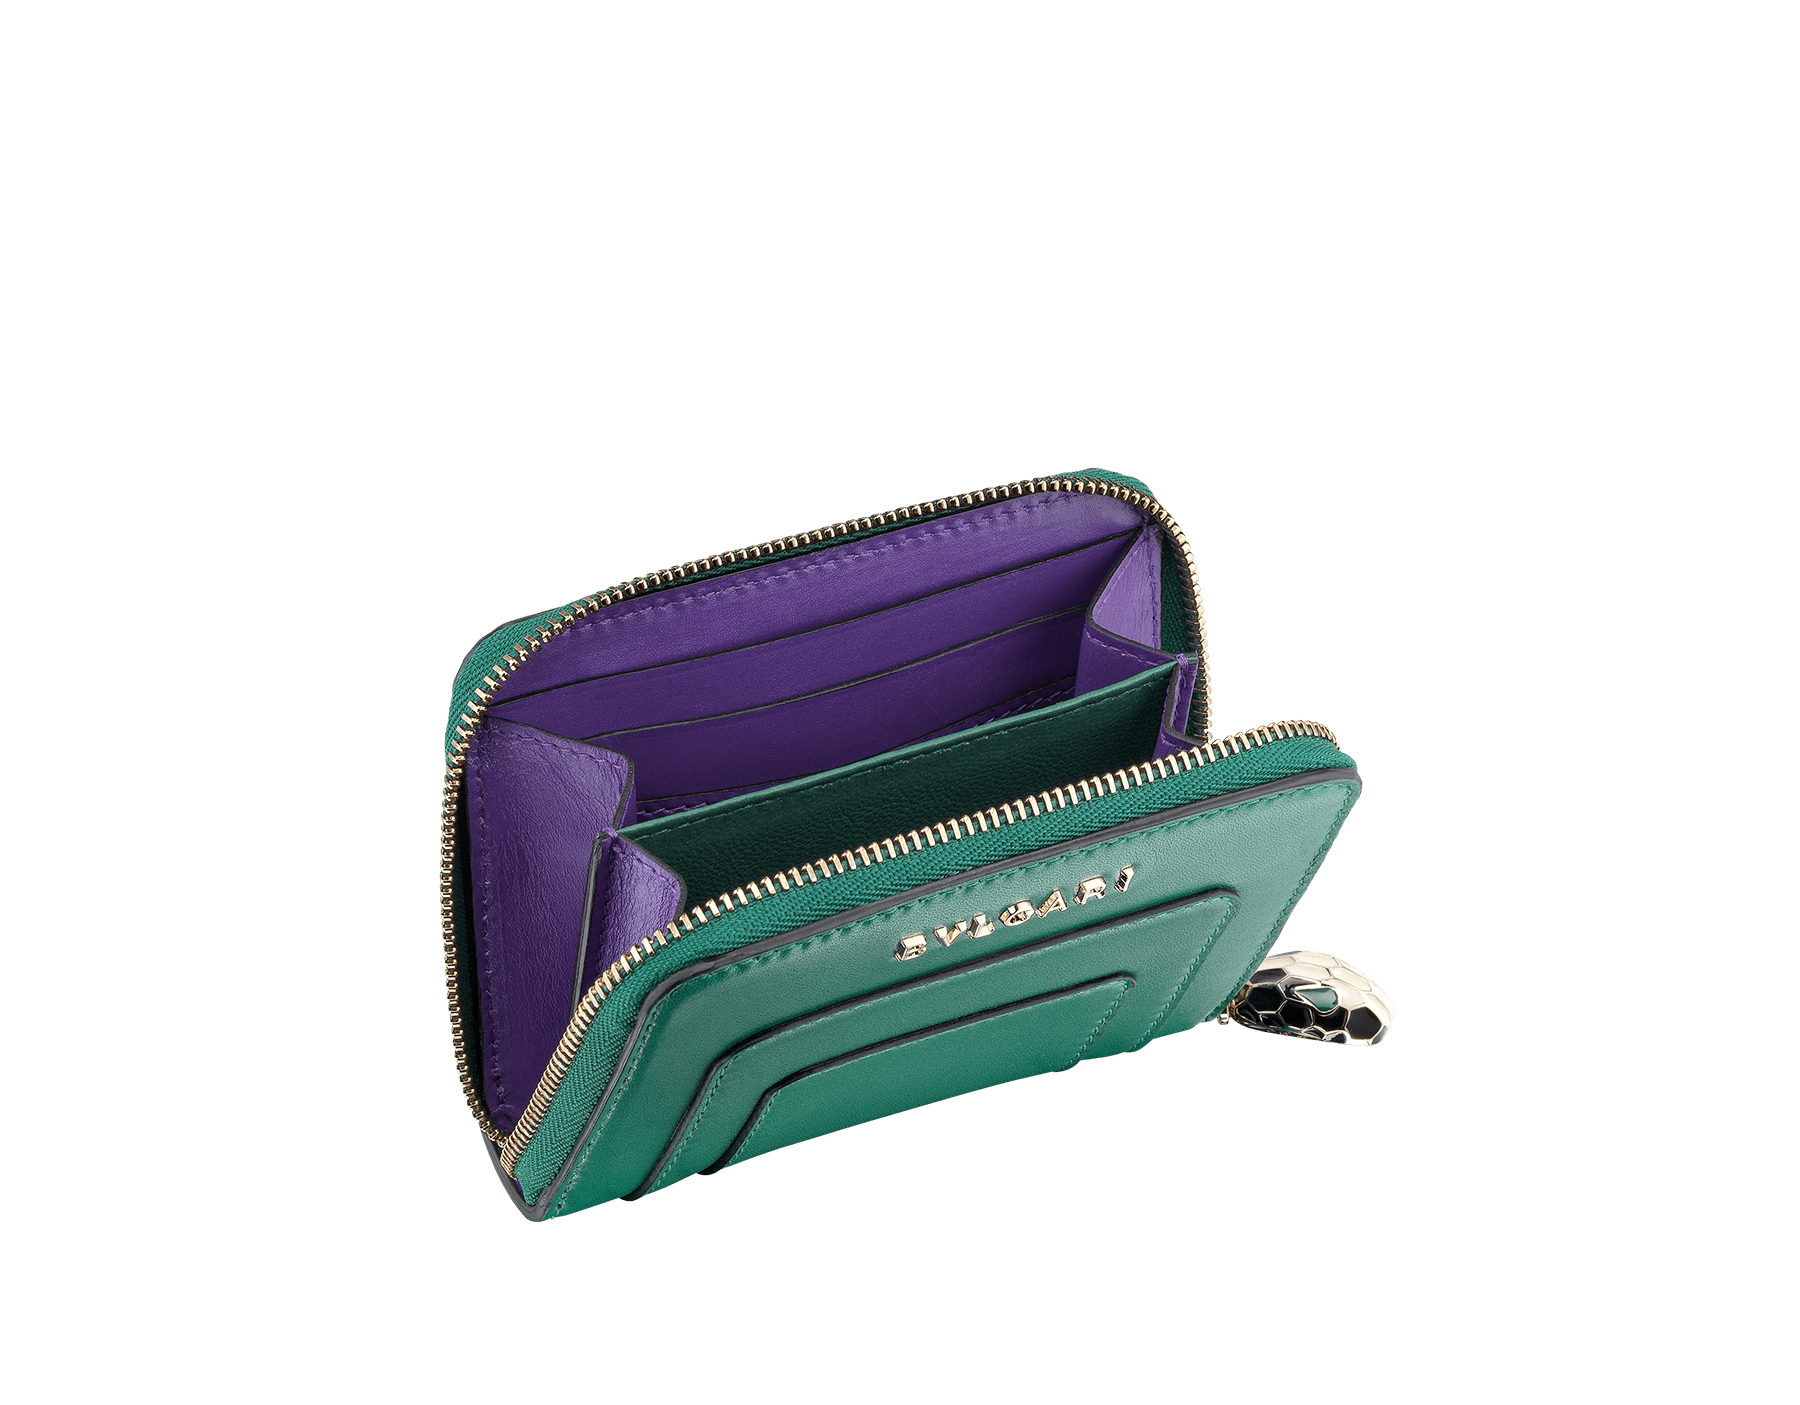 Serpenti Forever mini zipped wallet in cobalt tourmaline and aster amethyst calf leather. Iconic snakehead zip puller in black and white enamel, with green enamel eyes SEA-WLT-MINI-ZIP-CLc image 2